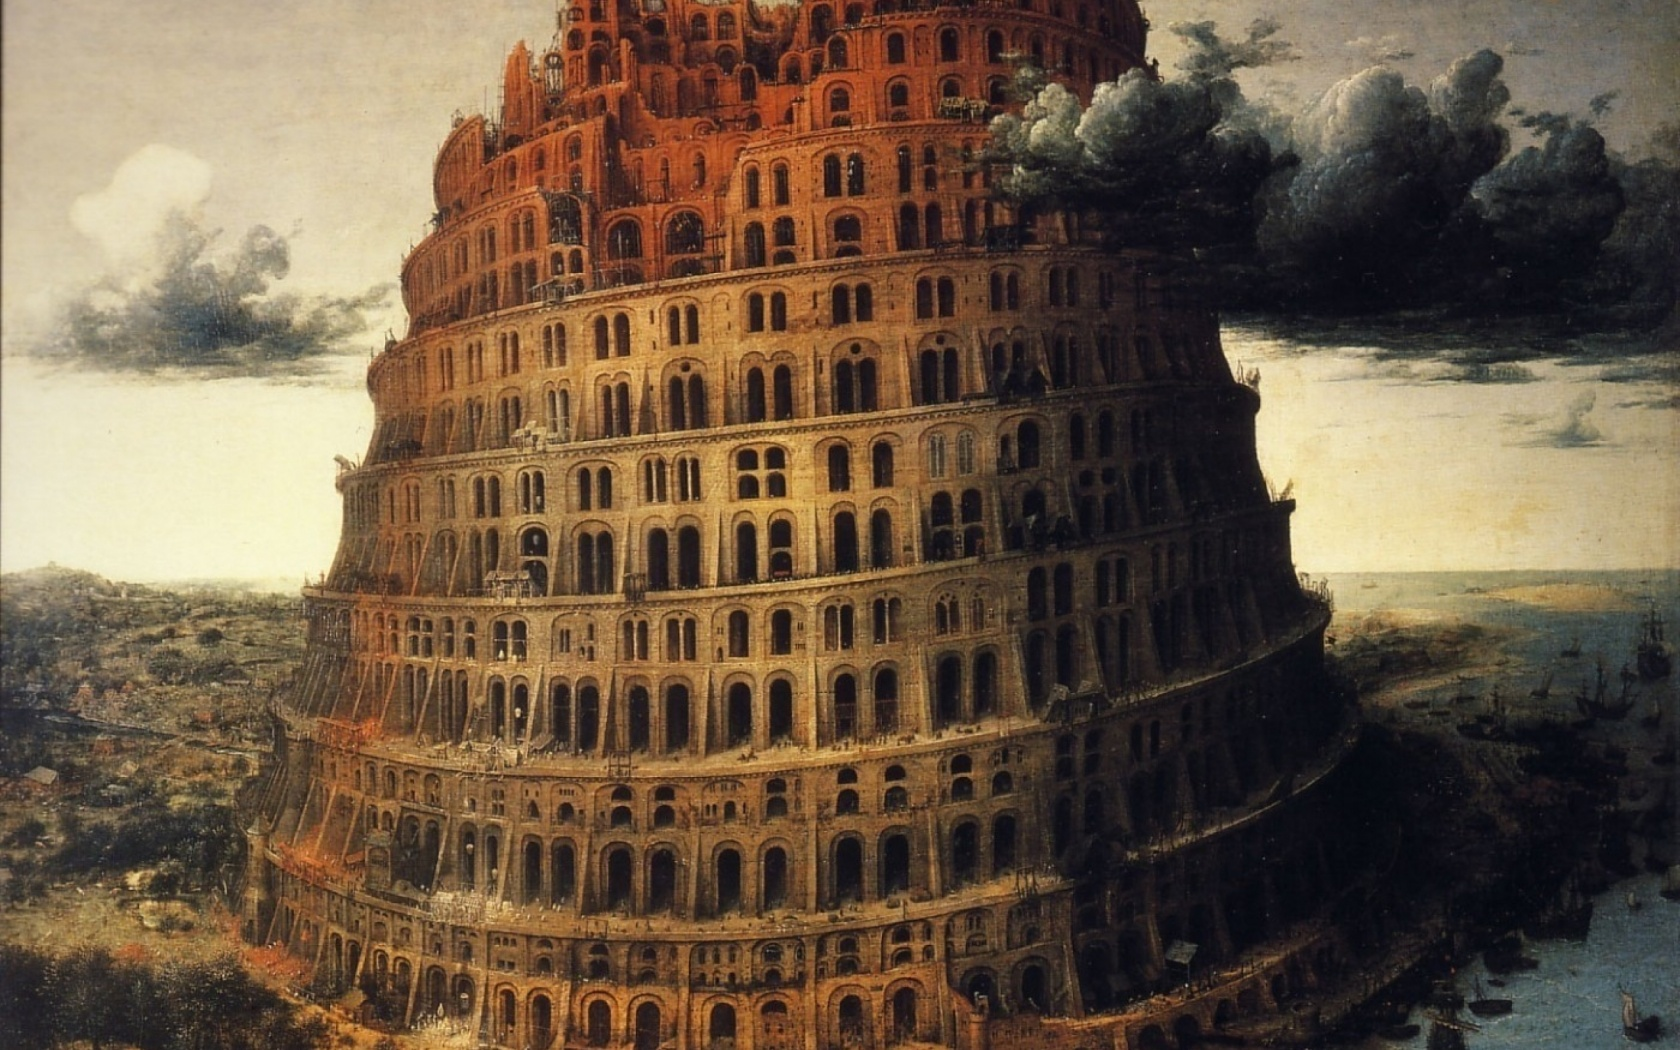 why did the tower of babel